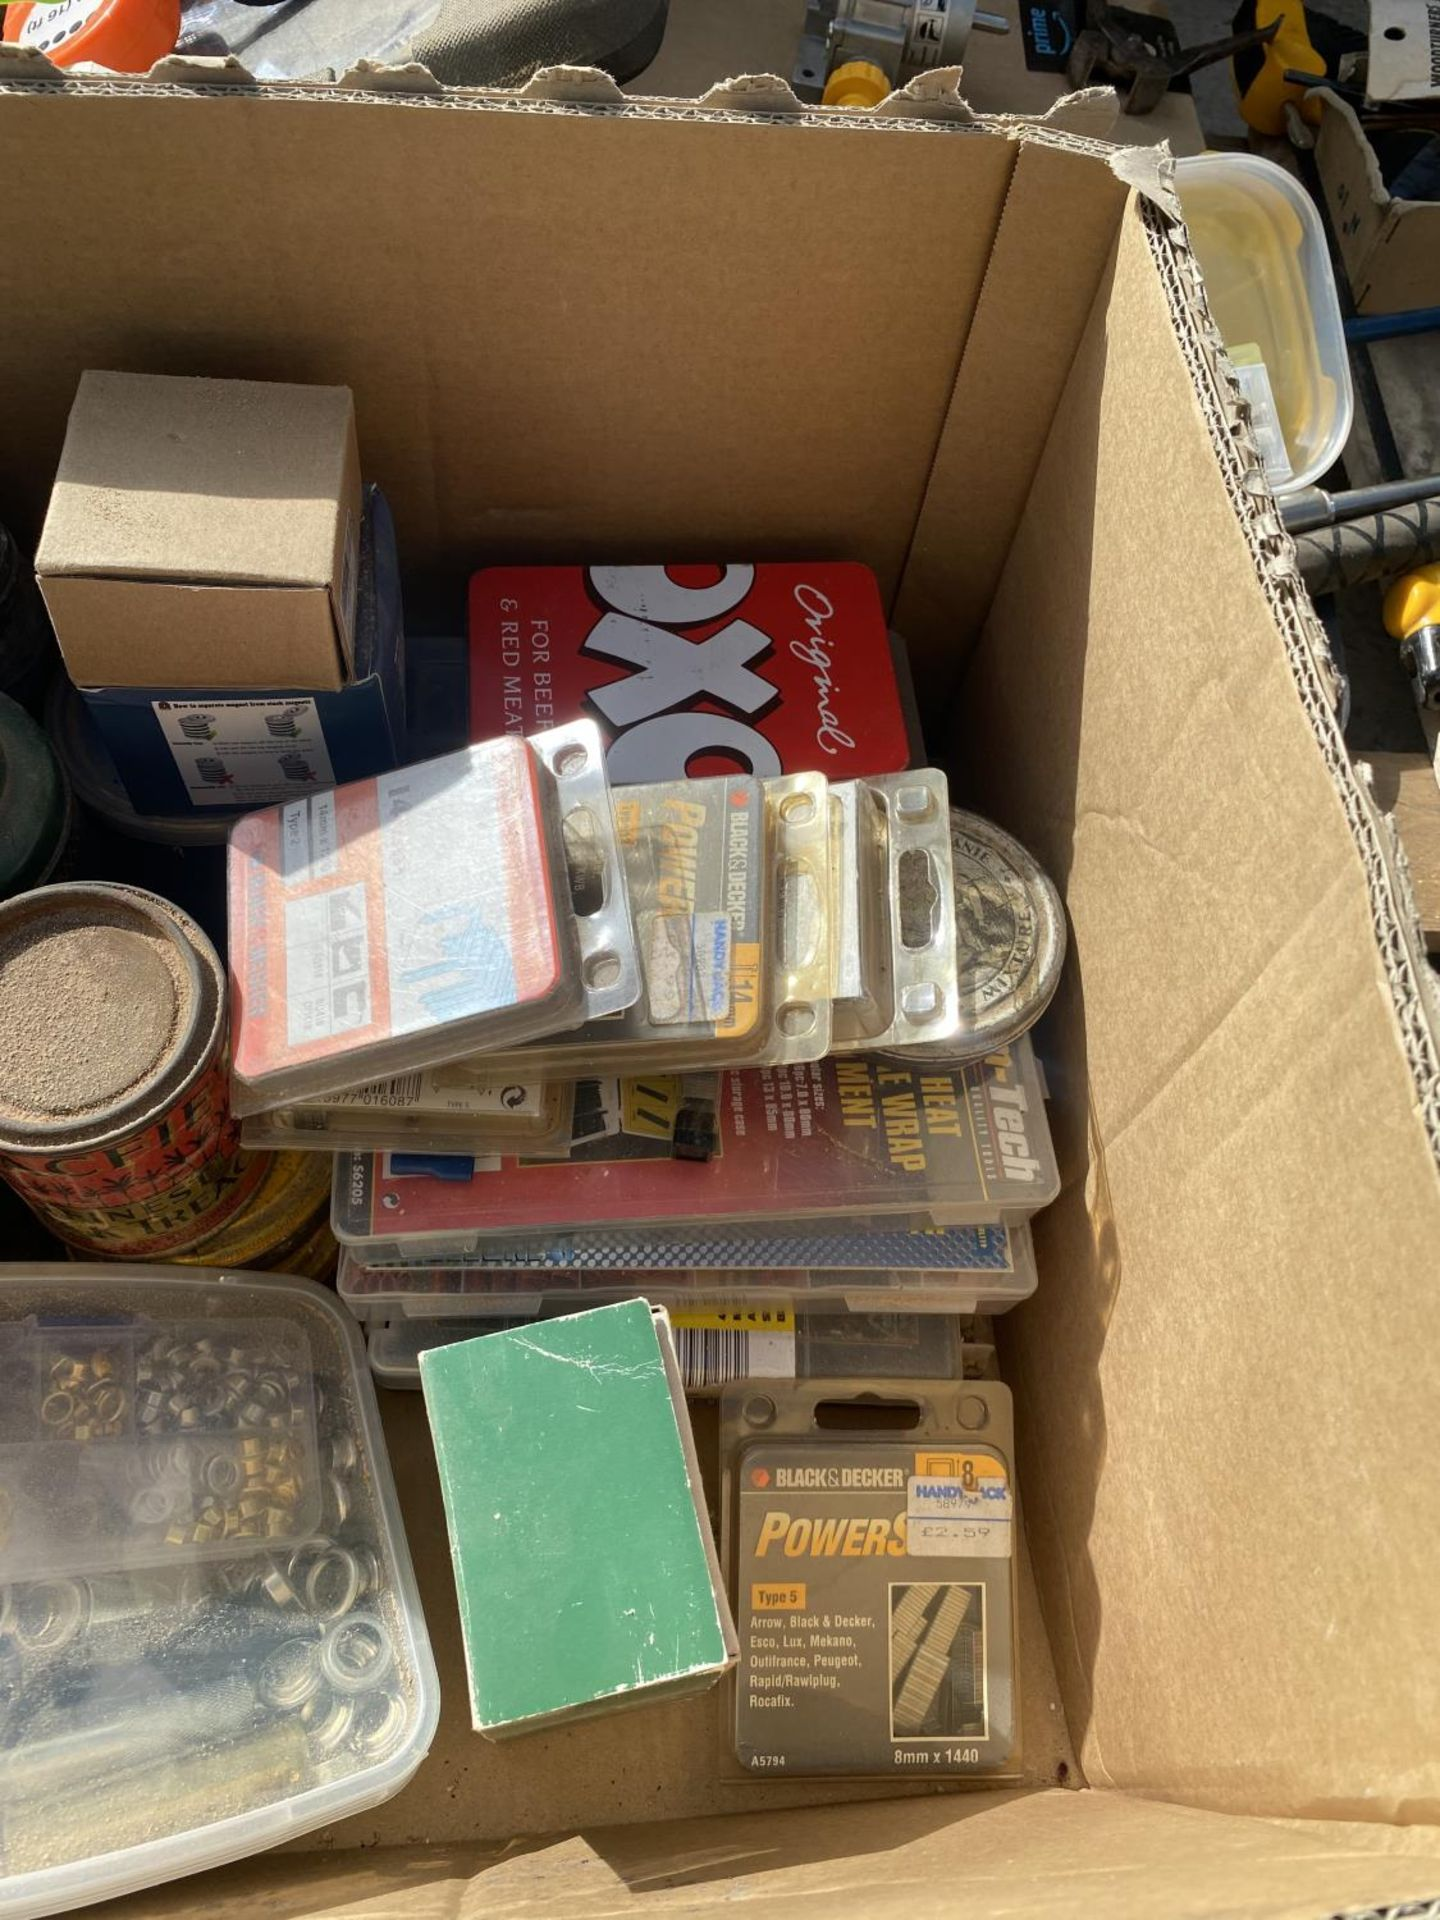 A BOX CONTAINING NUTS AND BOLTS, TERMINAL CONNECTORS, STRING ETC - Image 5 of 6